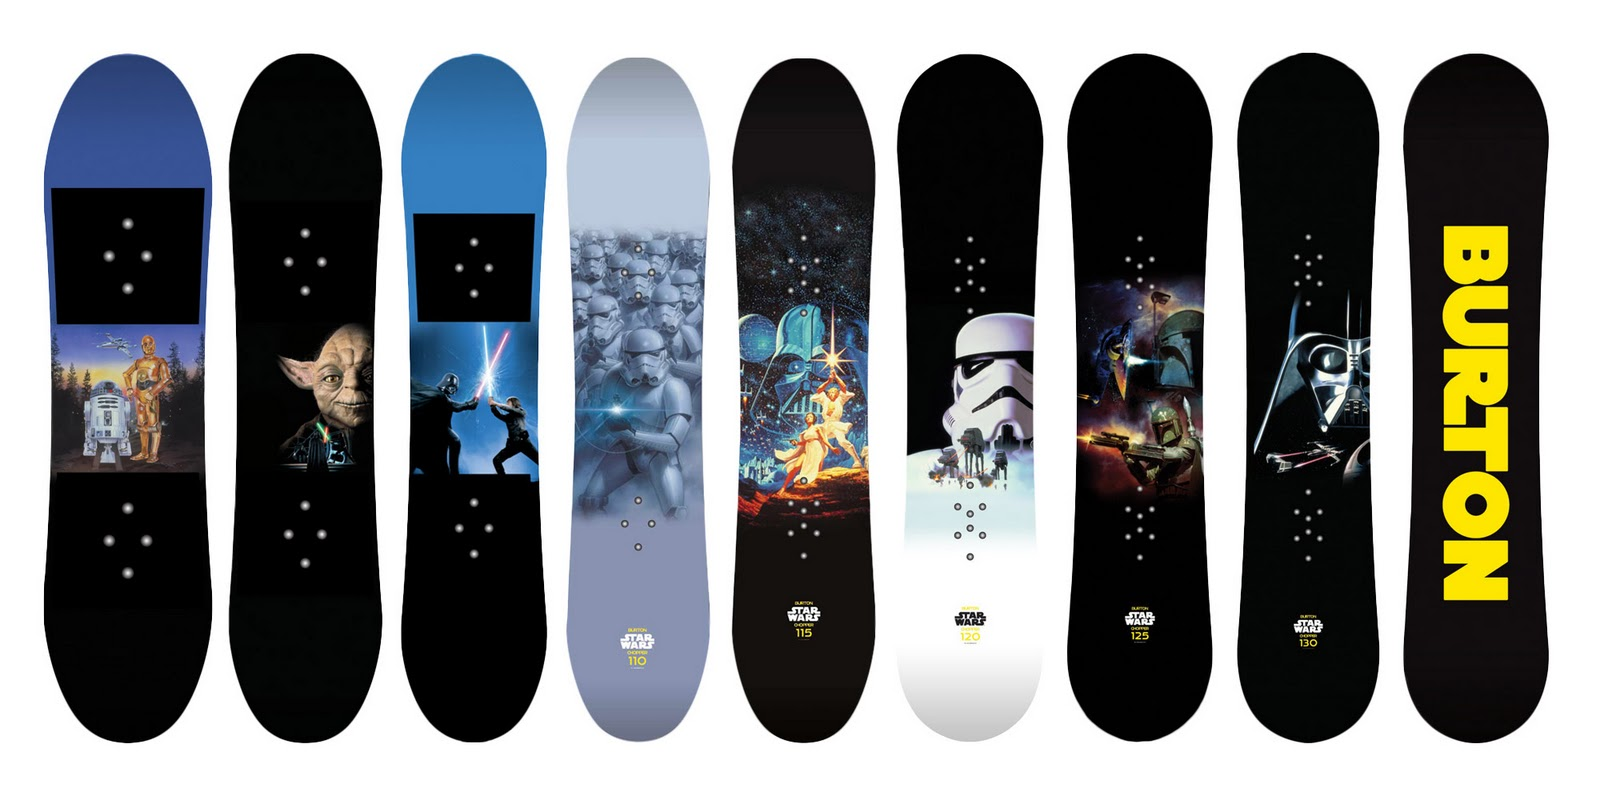 Star Wars Snowboards And Helmet Limited Editions From